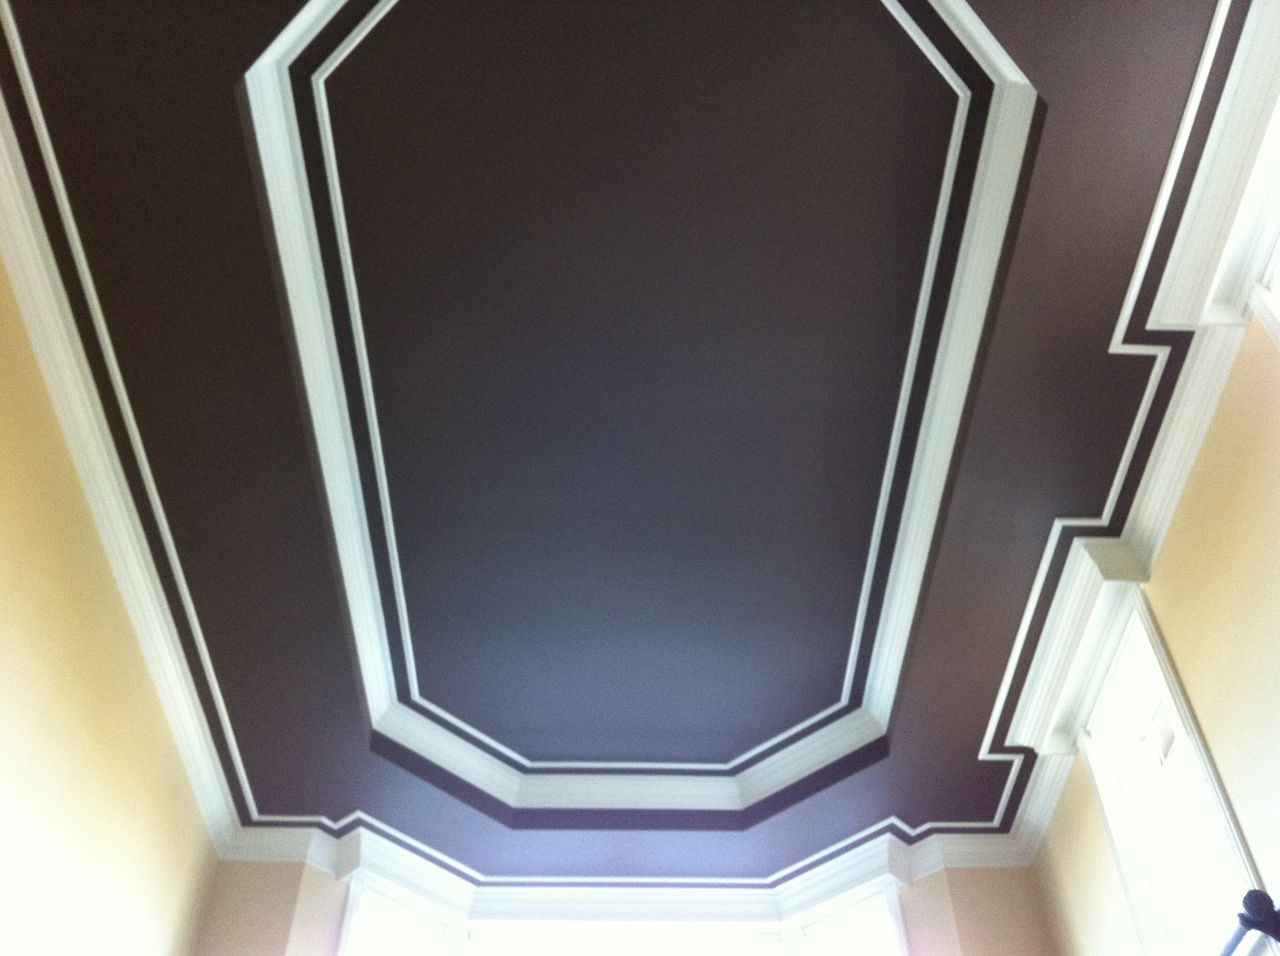 Painting A High Ceiling Why Not Give It A Little Panache